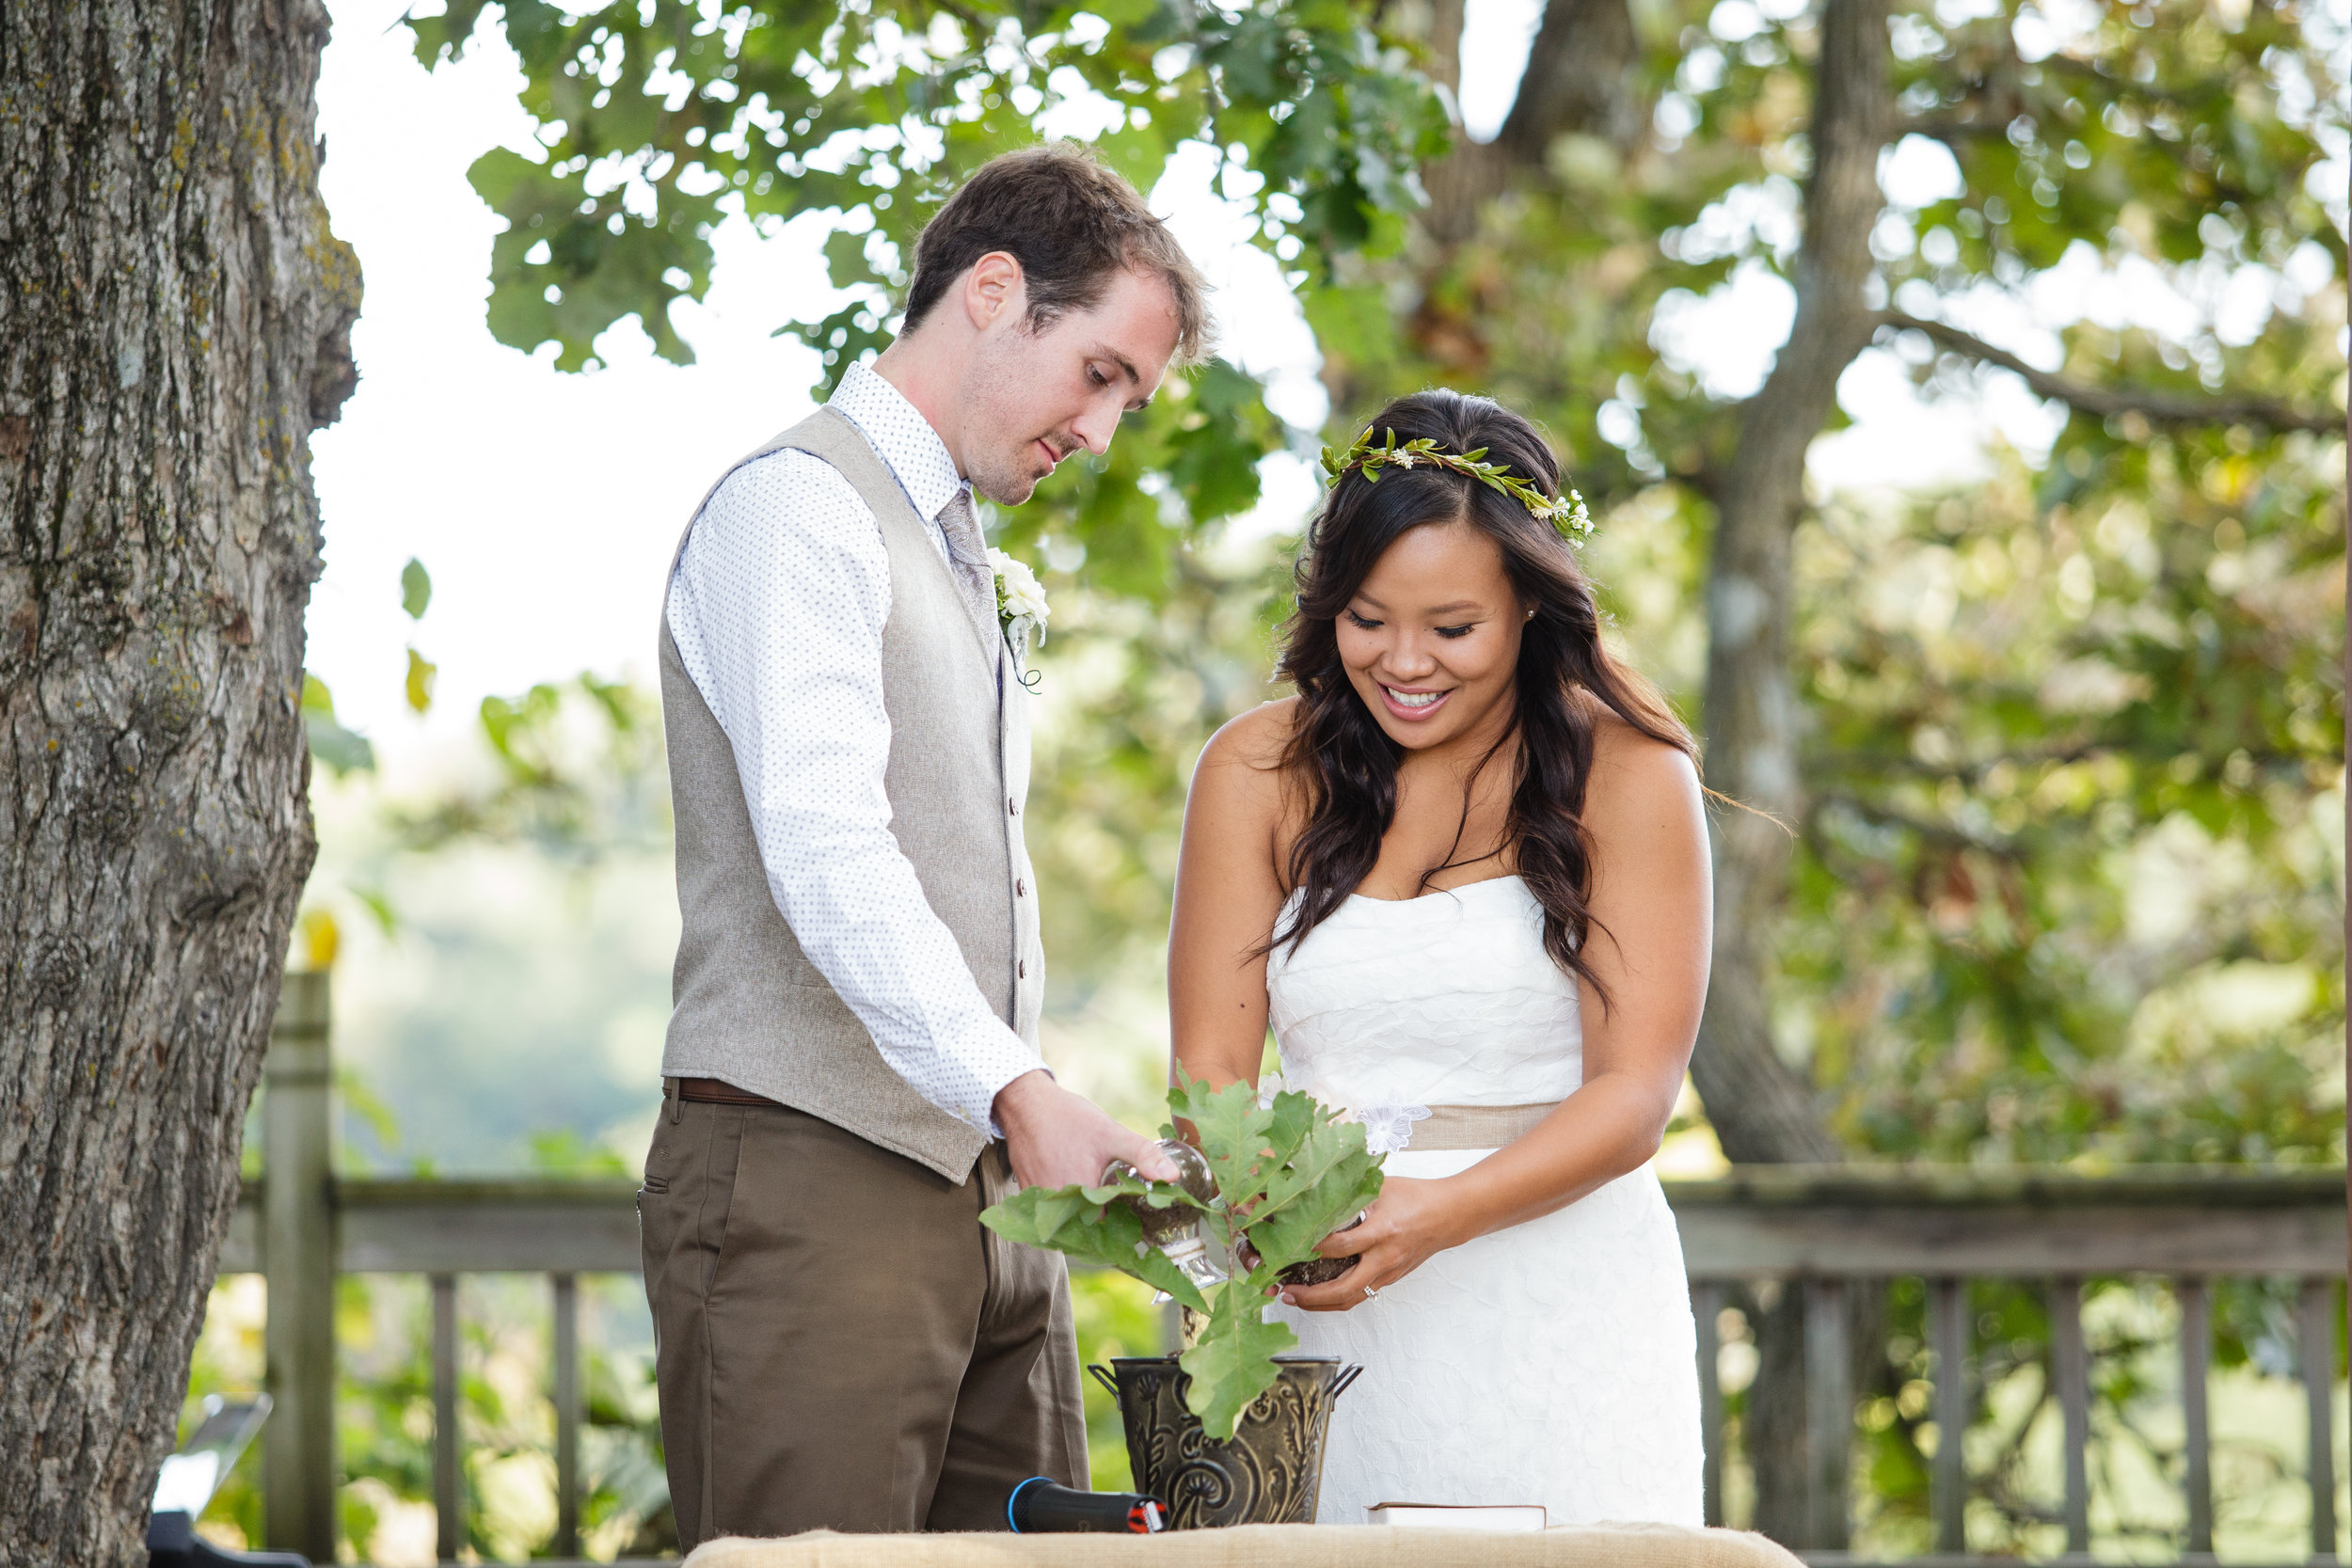 Facing the audience for your unity ceremony allows the photographer capture your expressions.